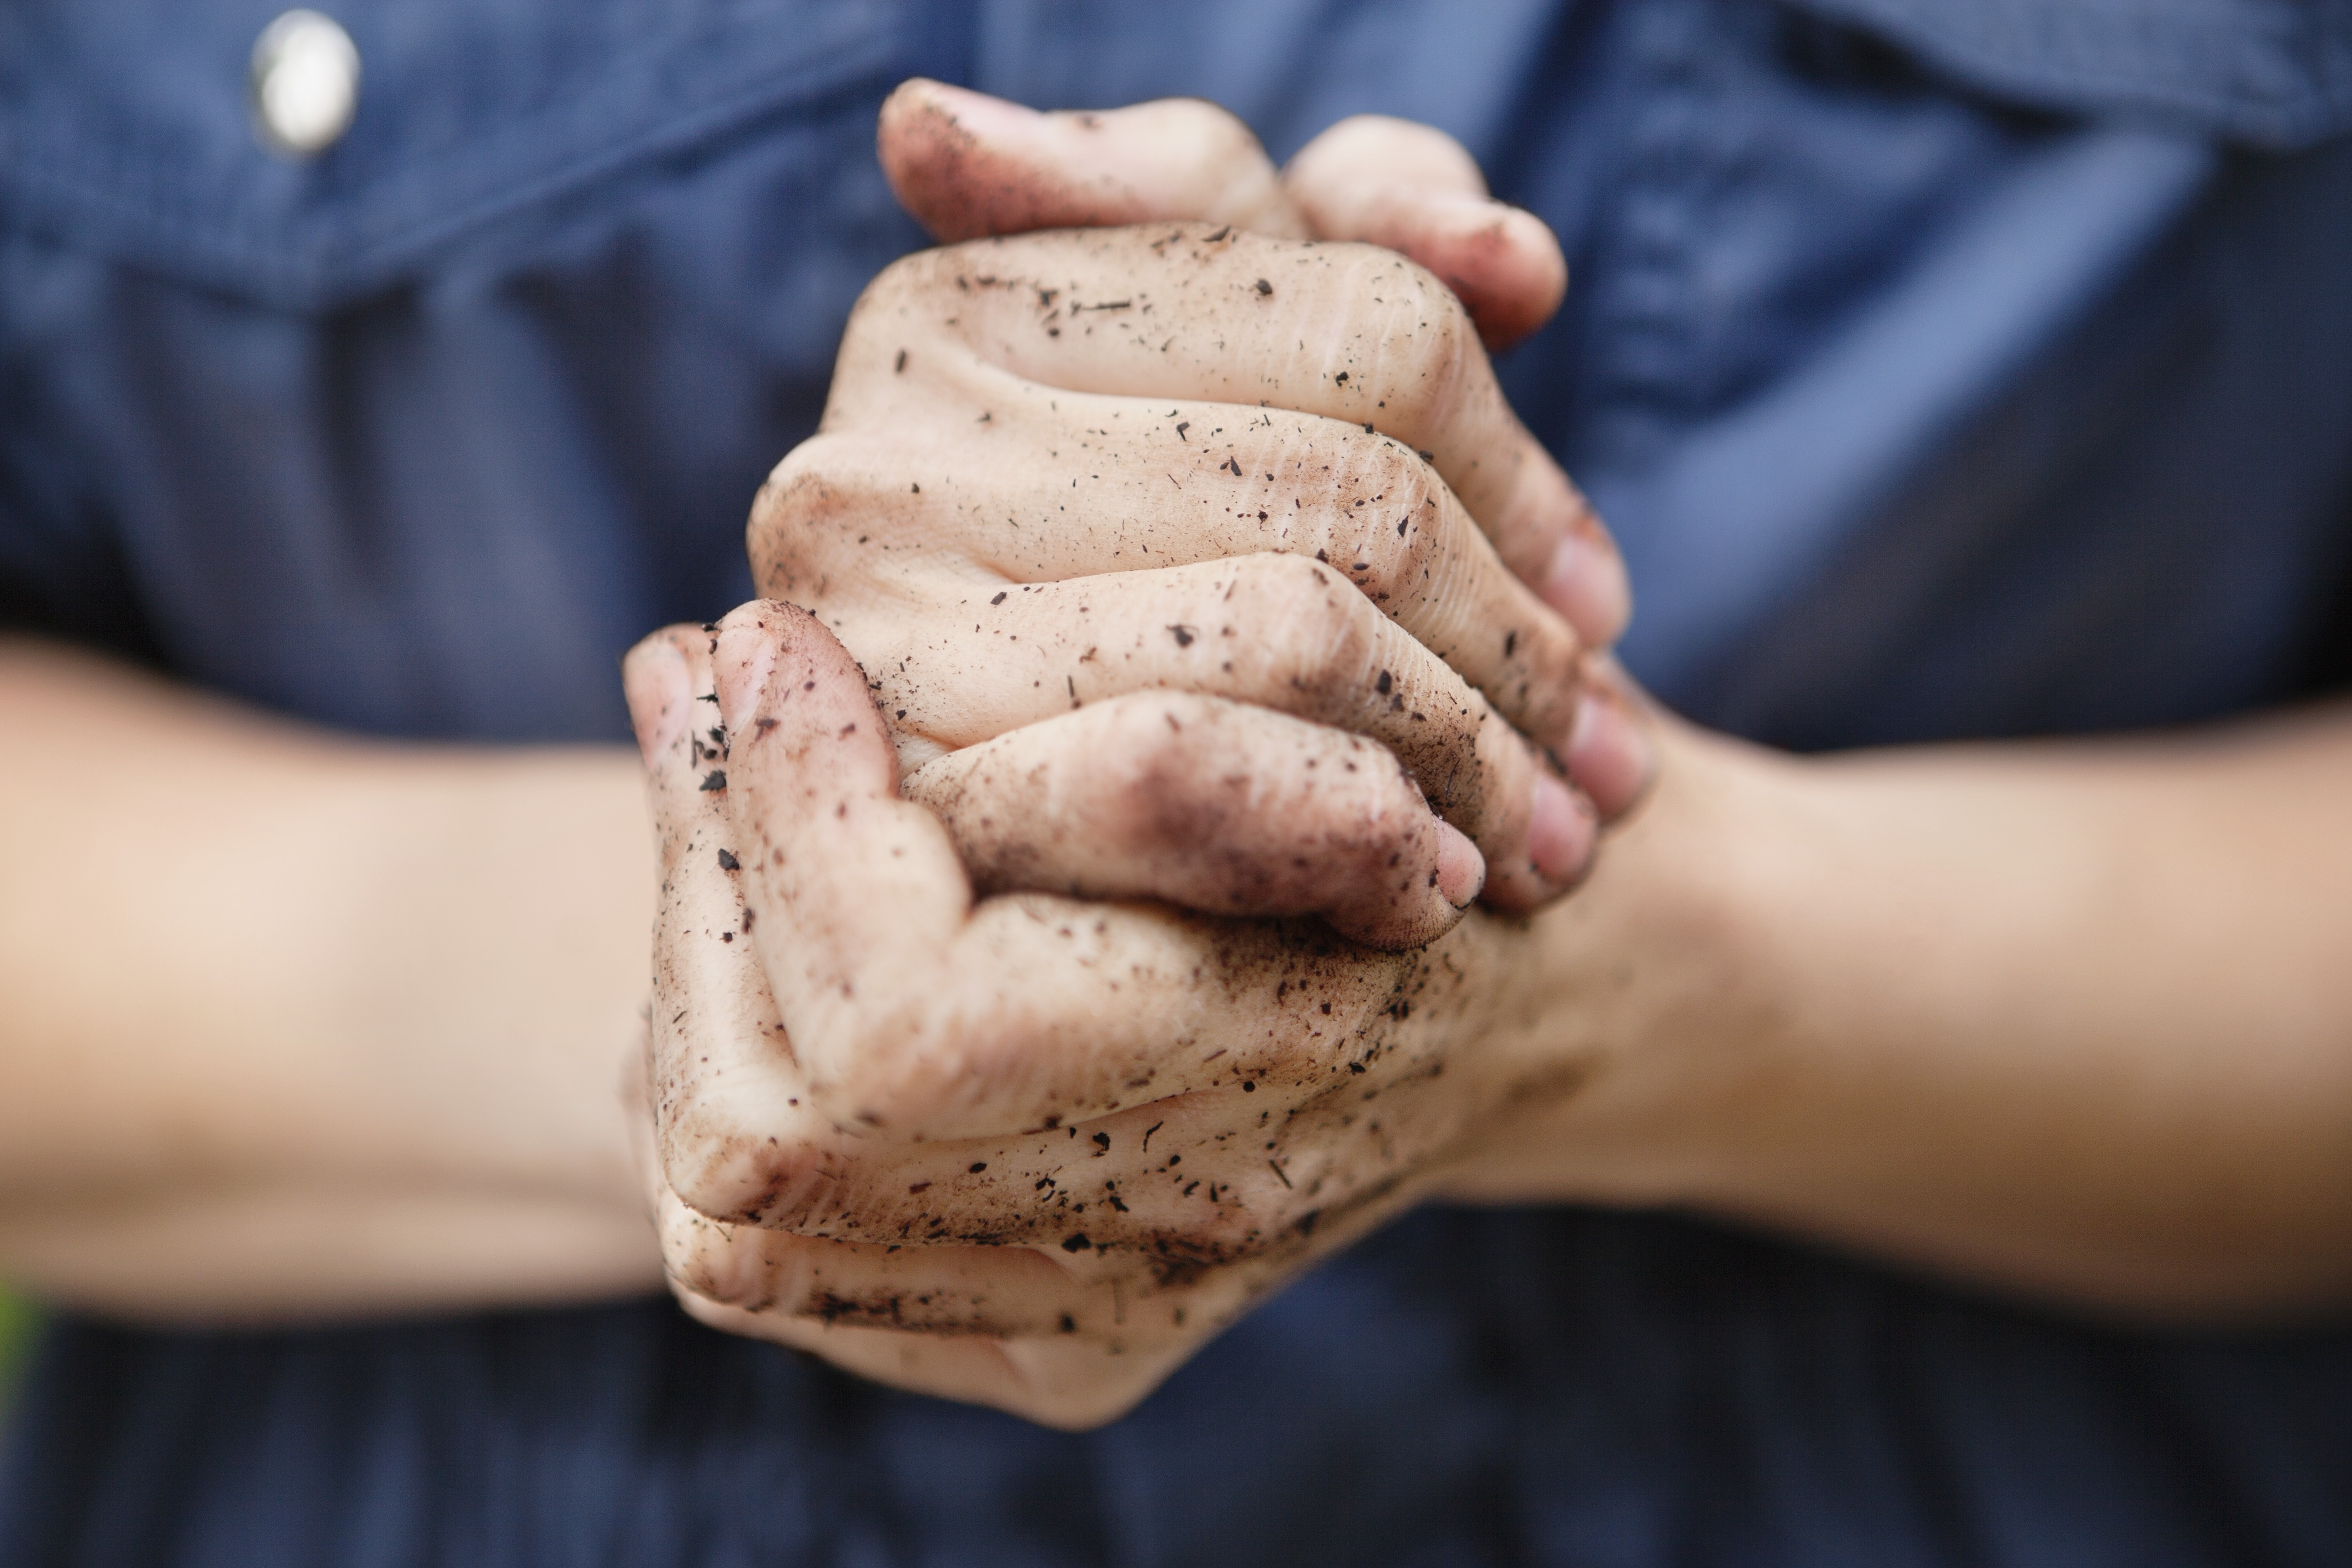 dirt-covered hands